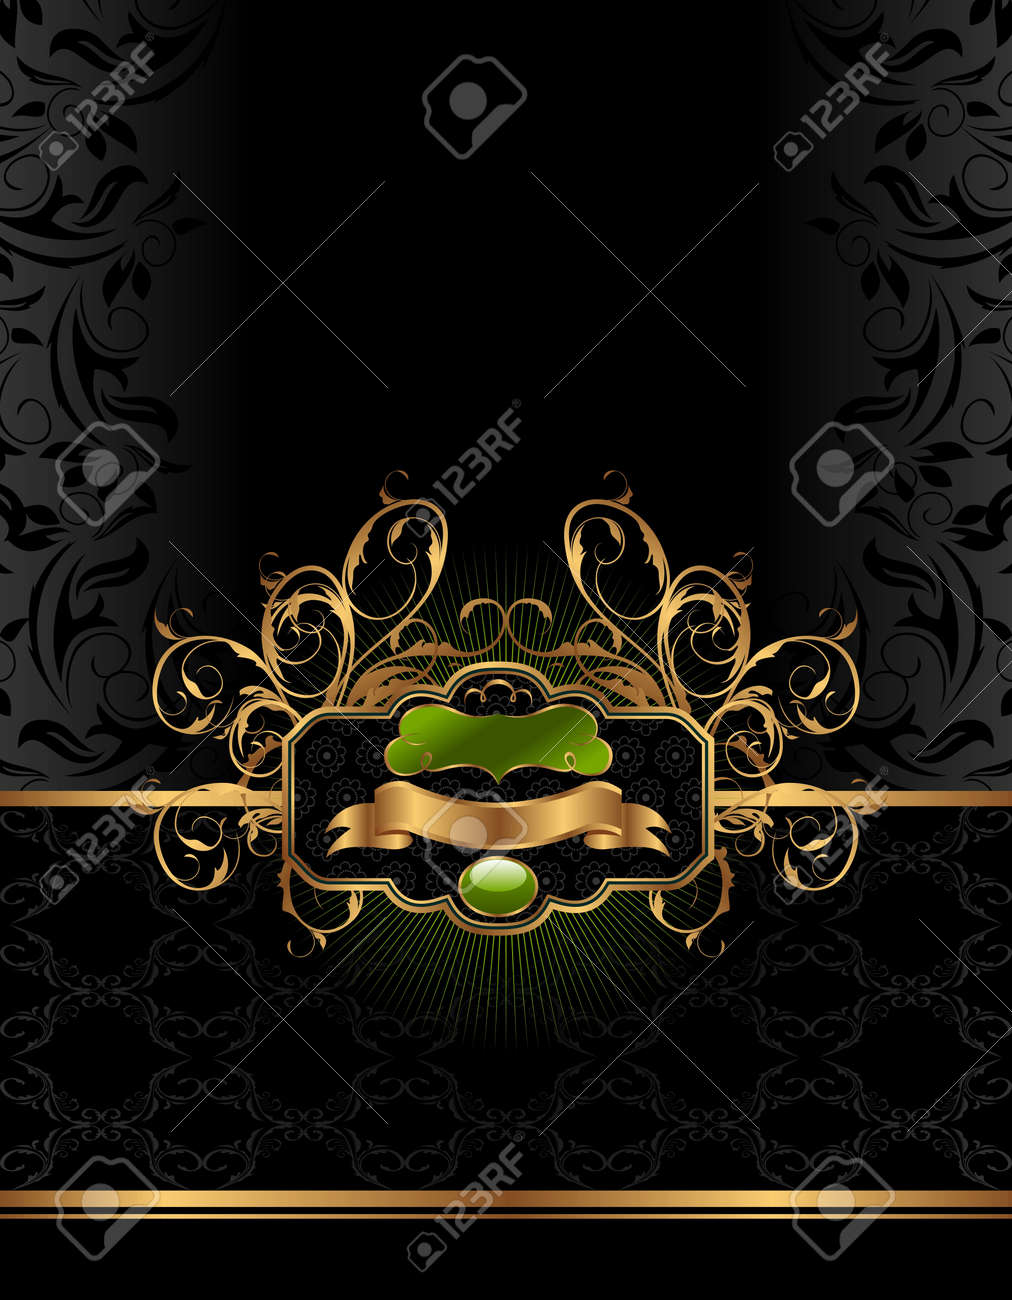 Illustration golden luxury background with label - vector Stock Vector - 9722099